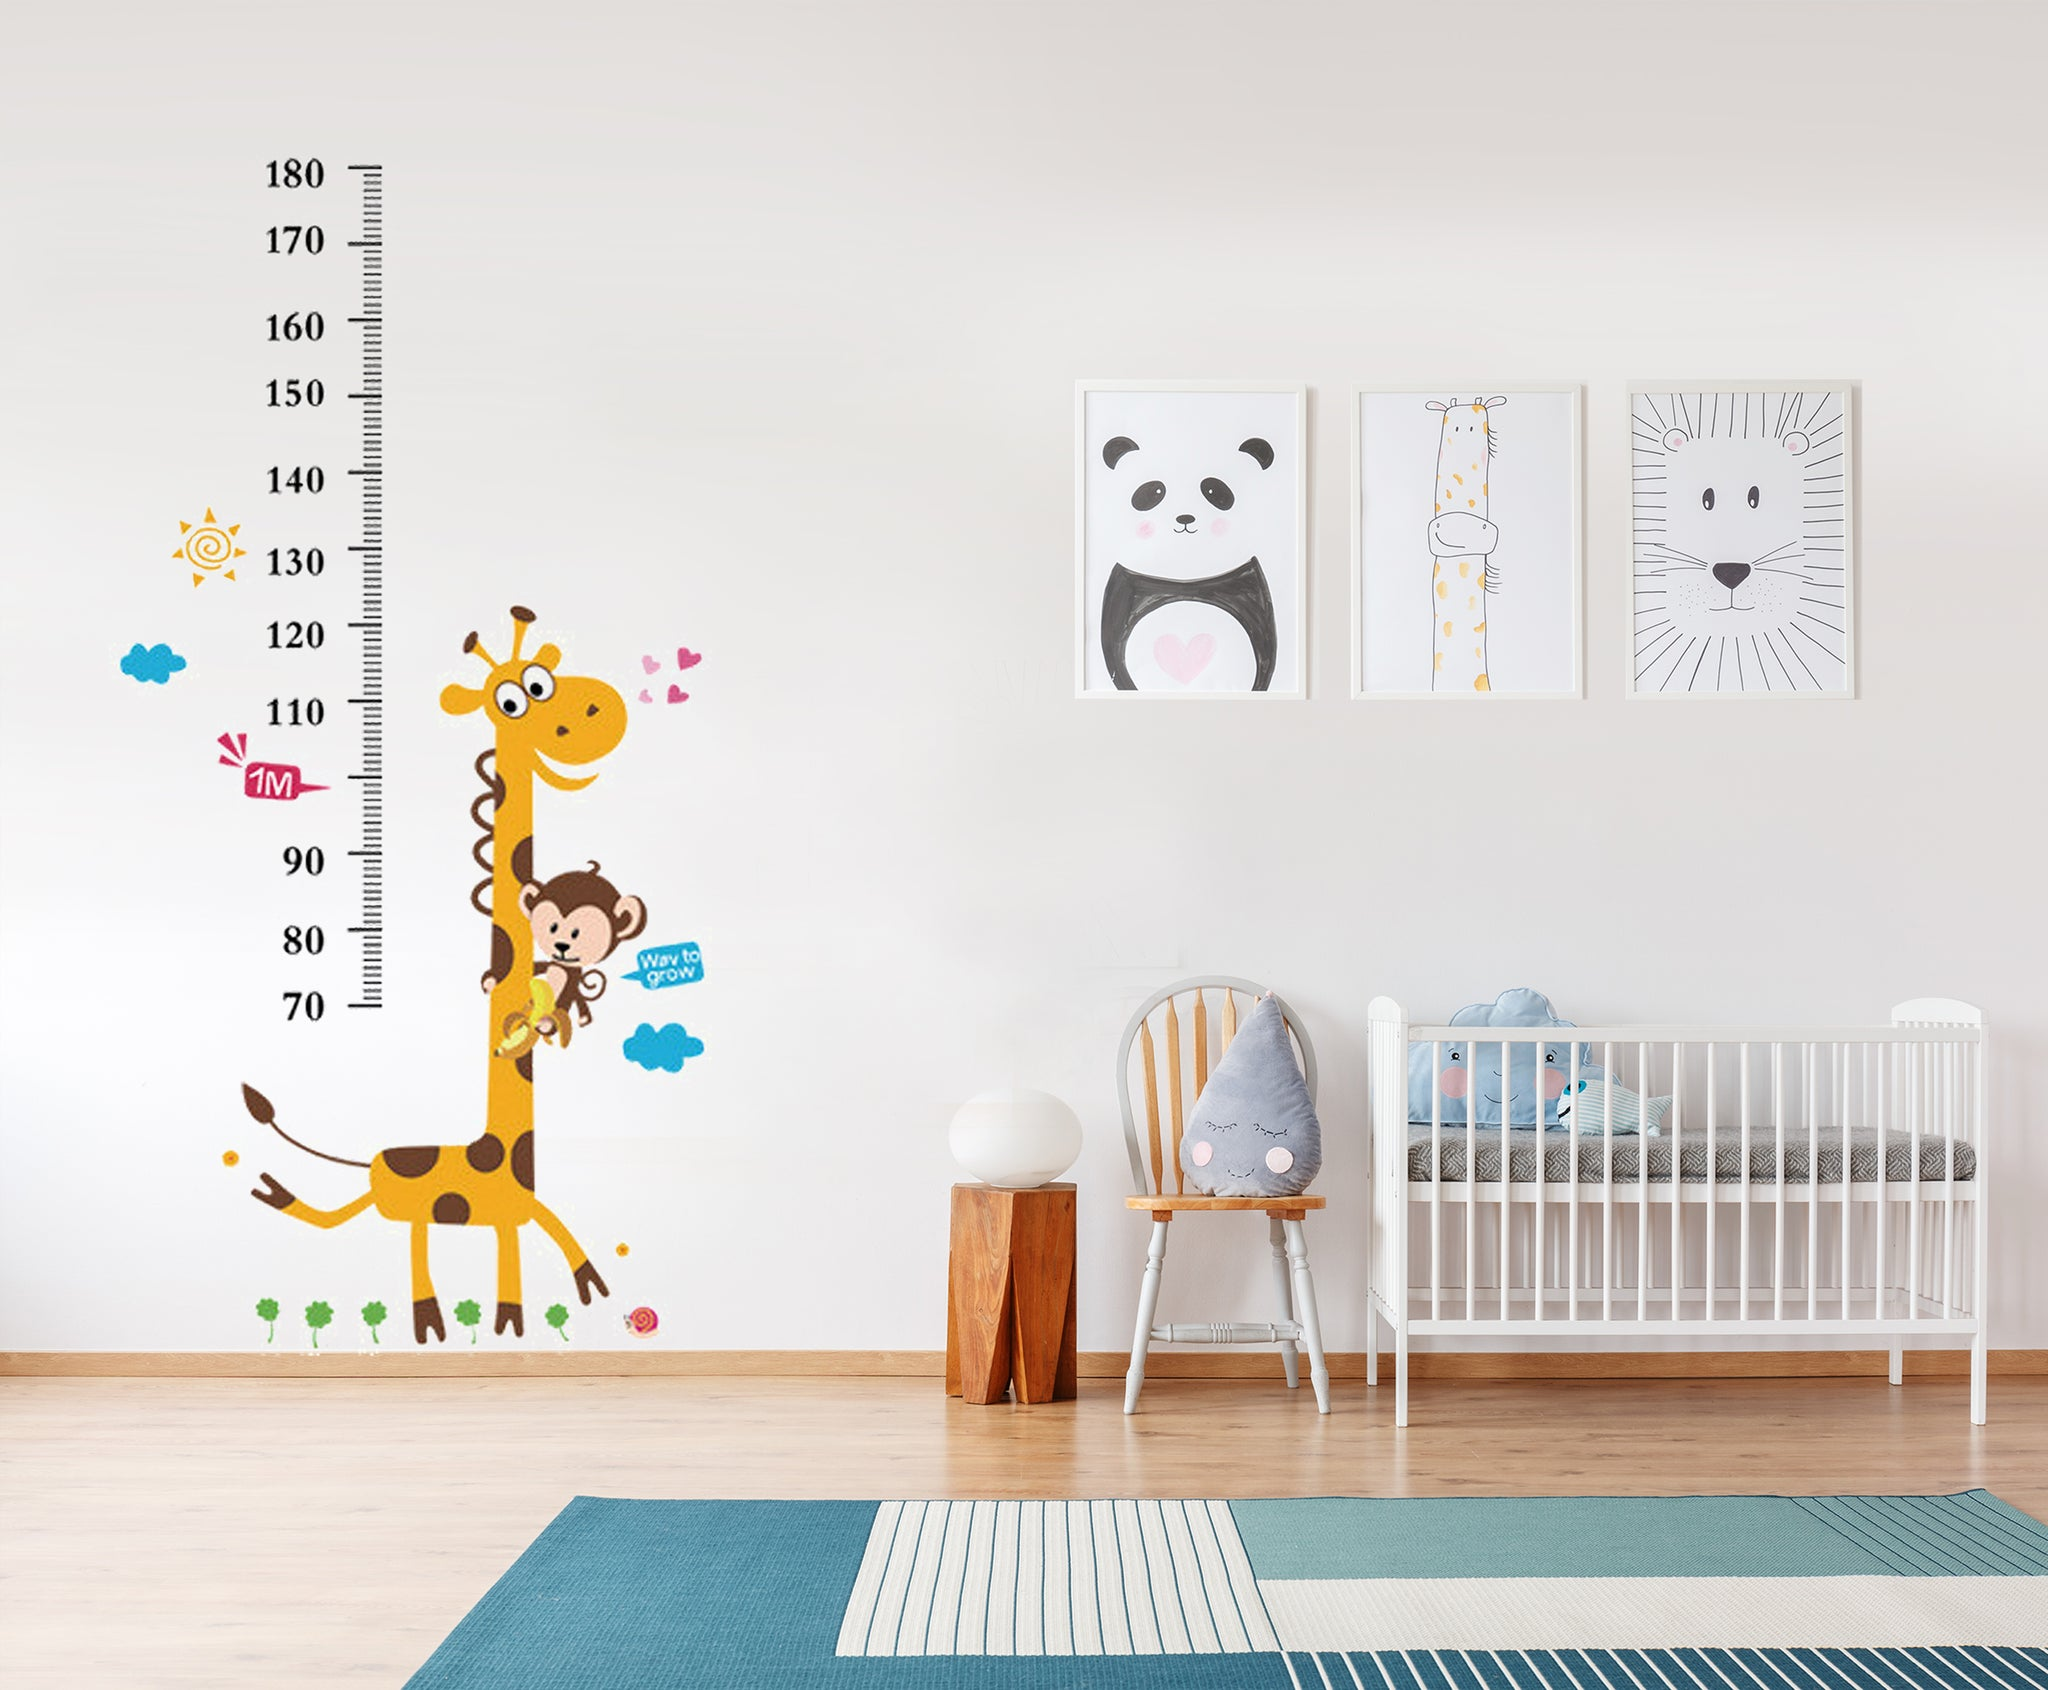 Smiling giraffe growth chart wall decal wall stickers for kids smiling giraffe growth chart wall decal wall stickers for kids room geenschuldenfo Image collections